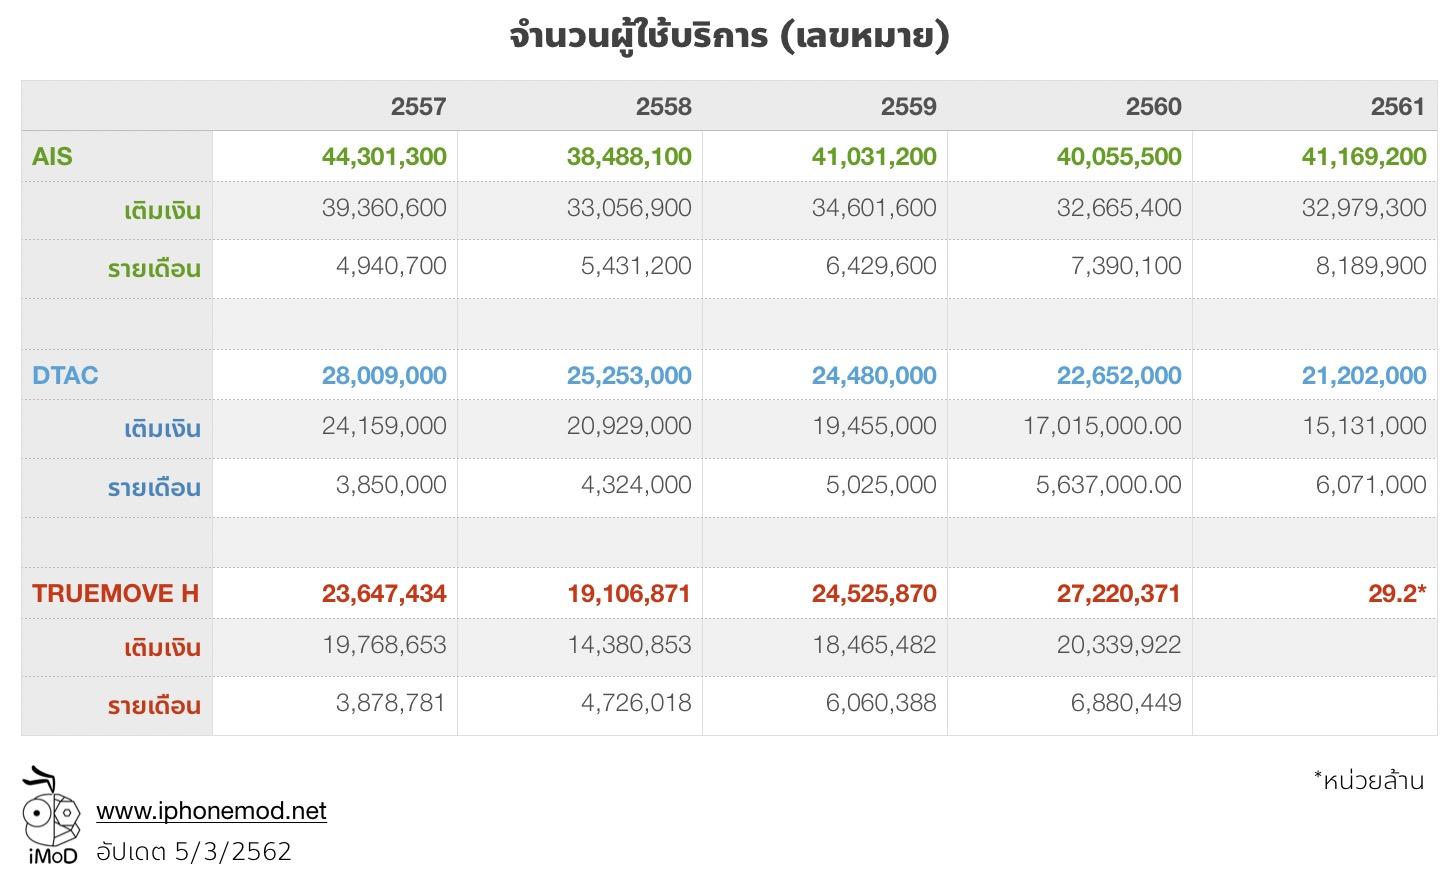 Thailand Mobile Subscribers 2014 2018 Update 5mar19